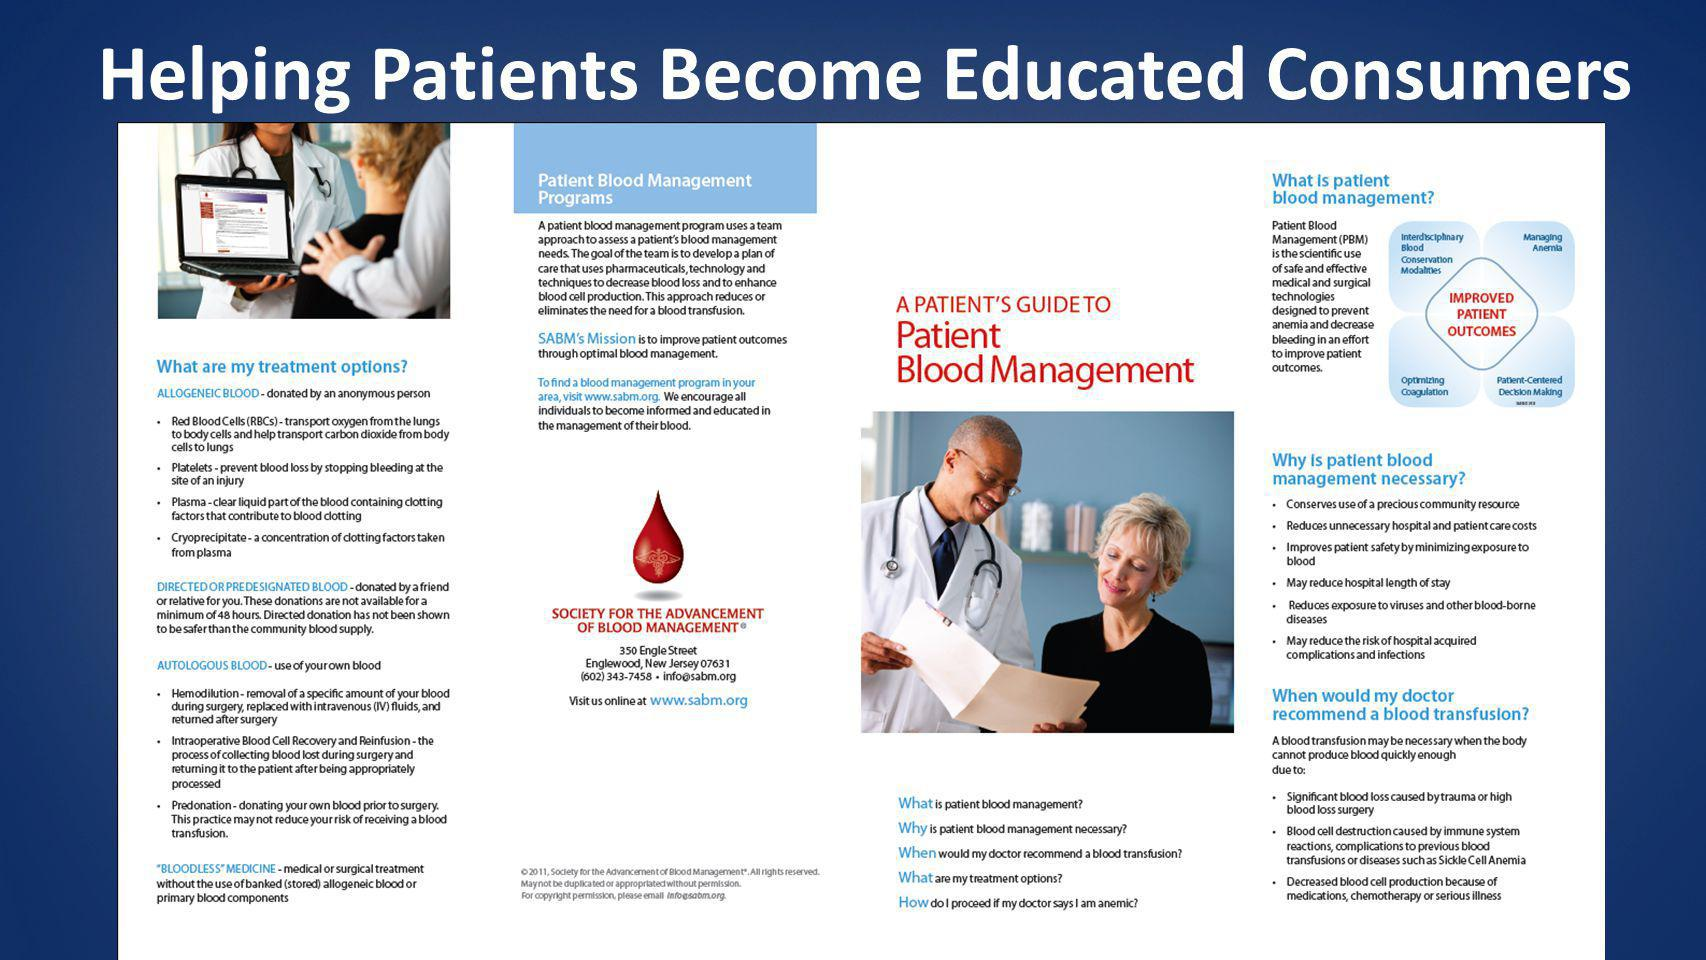 Helping Patients Become Educated Consumers